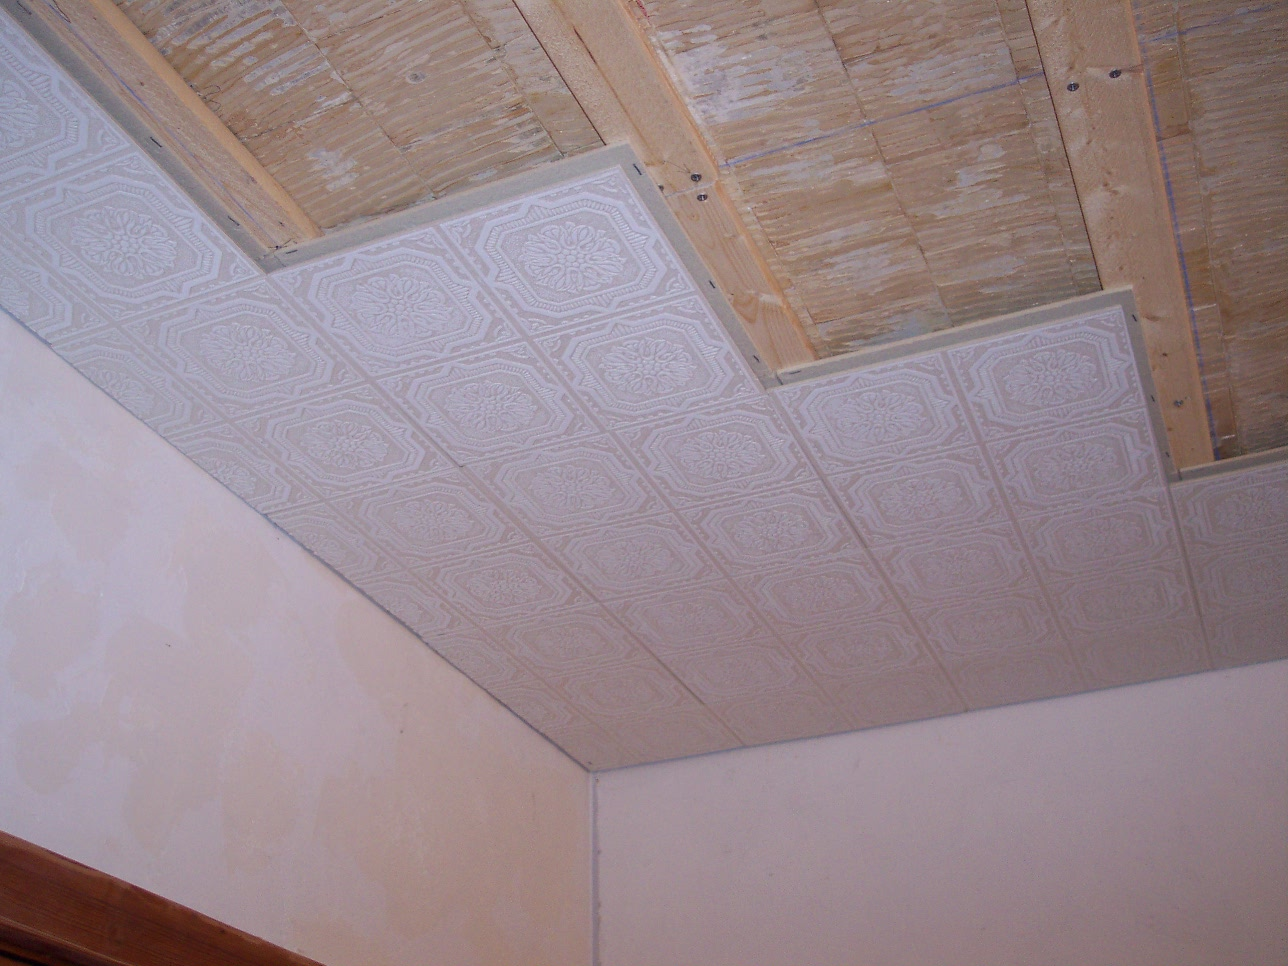 tongue and groove ceiling tiles - Video Search Engine at ...